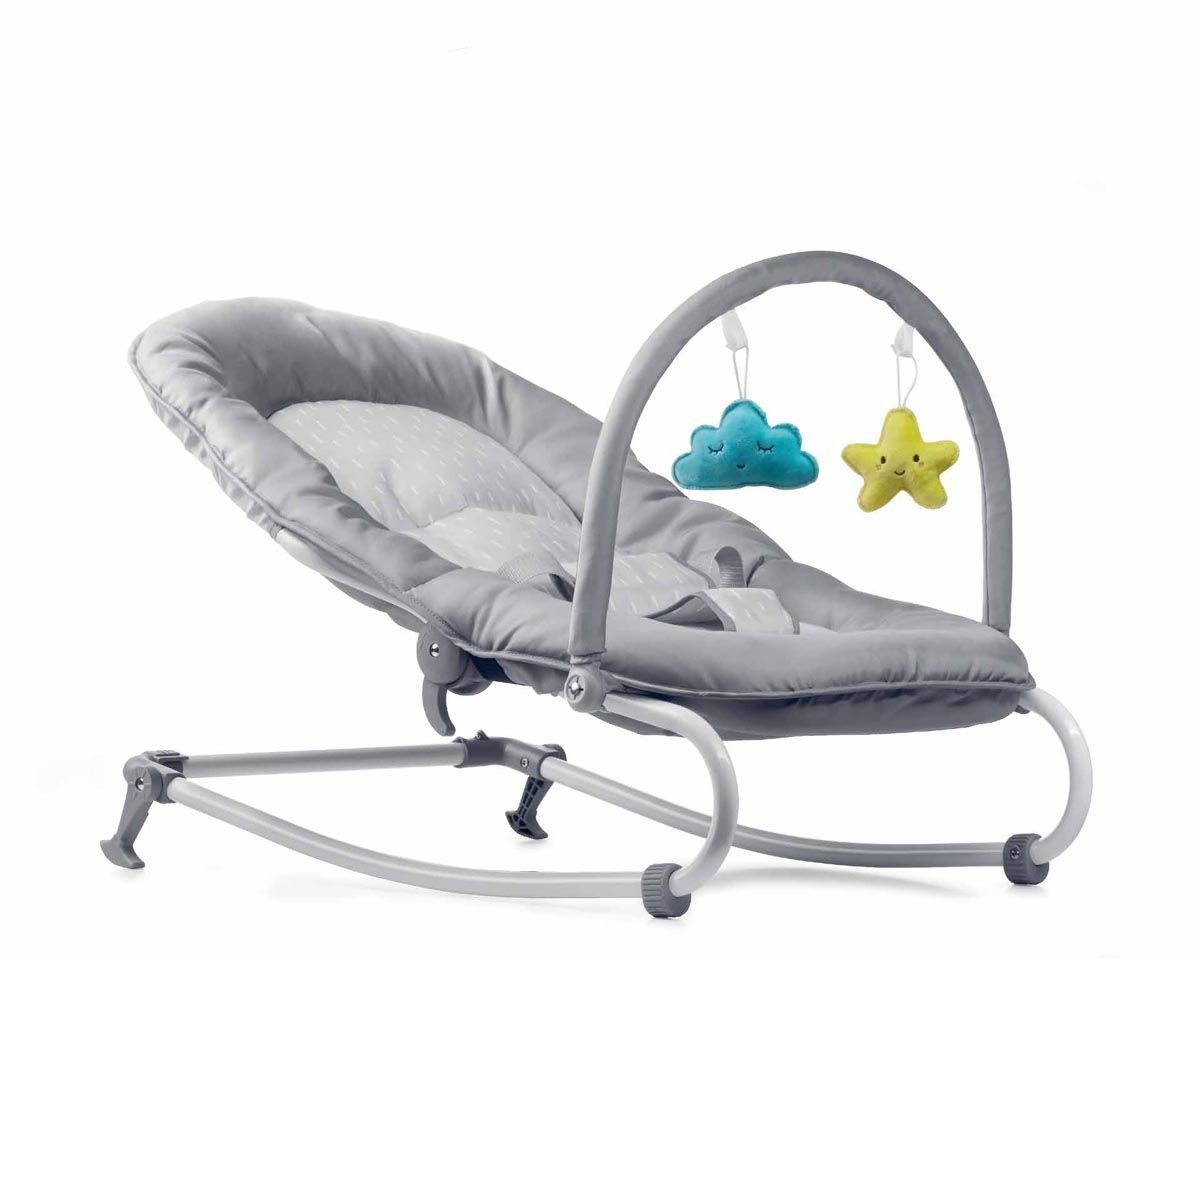 2 in 1 bouncer rocker kmart baby stuff pinterest bouncers